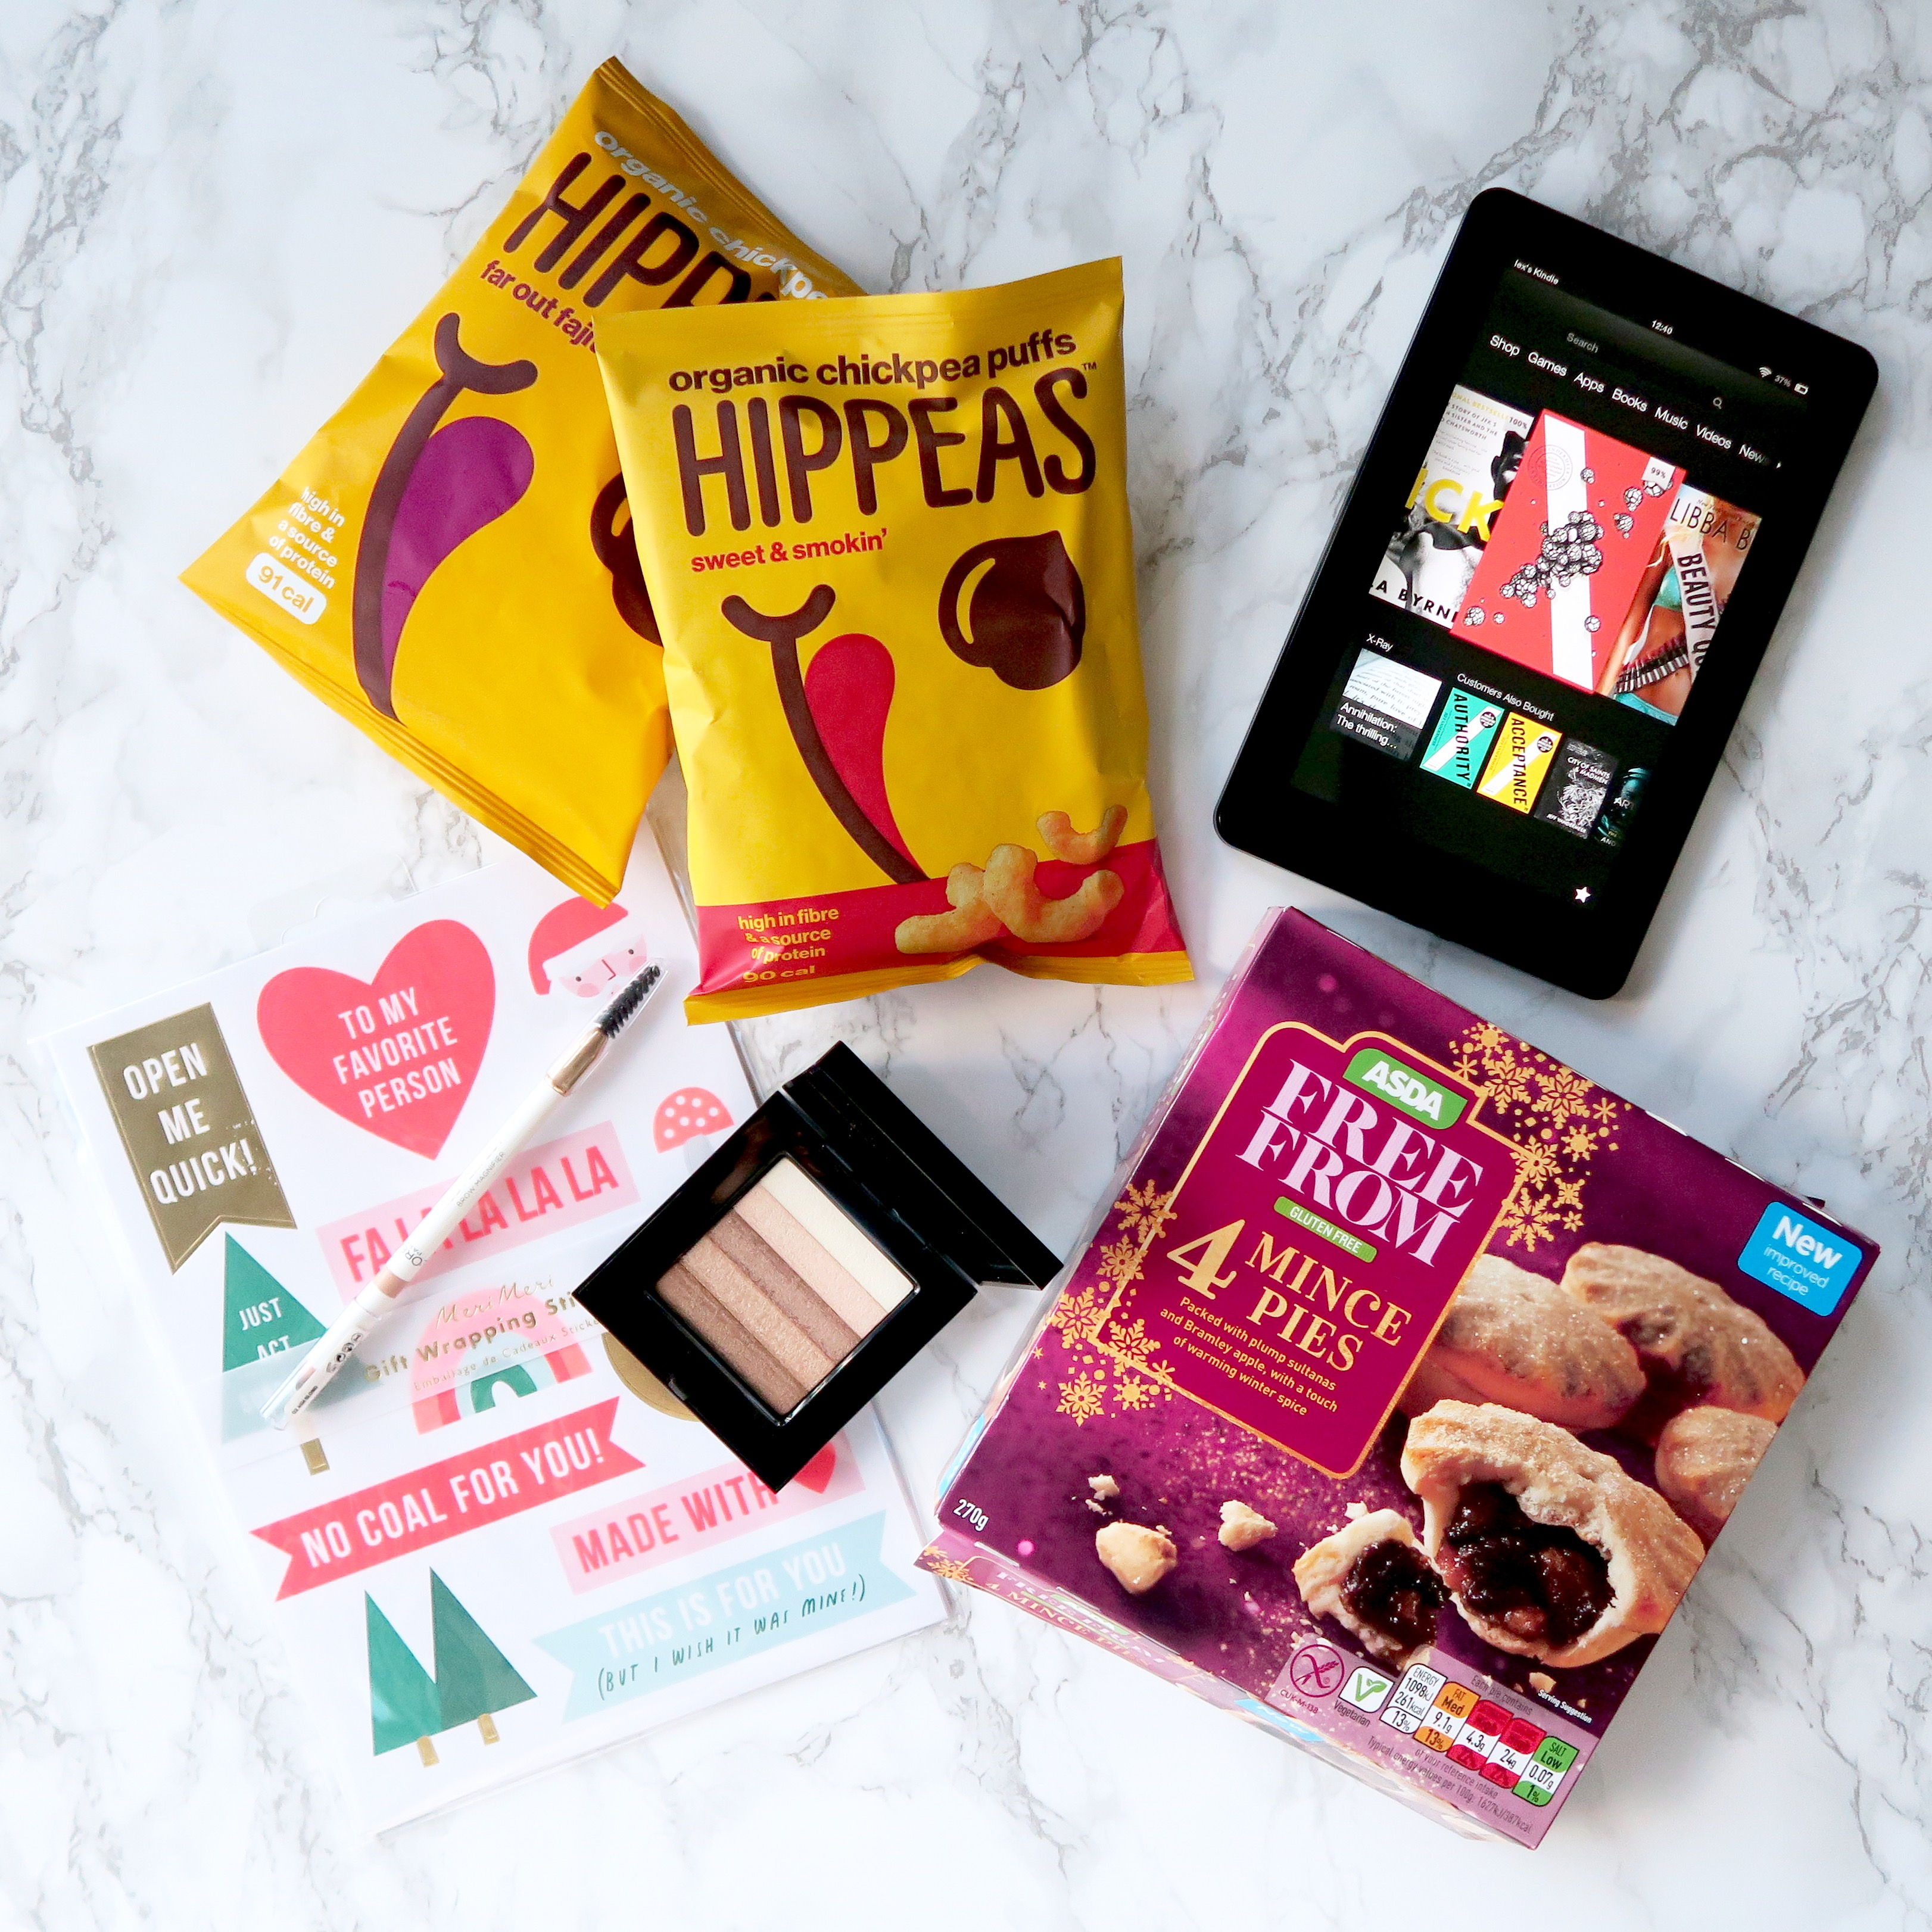 Friday Faves: Glow, Gluten-Free, and Great Books